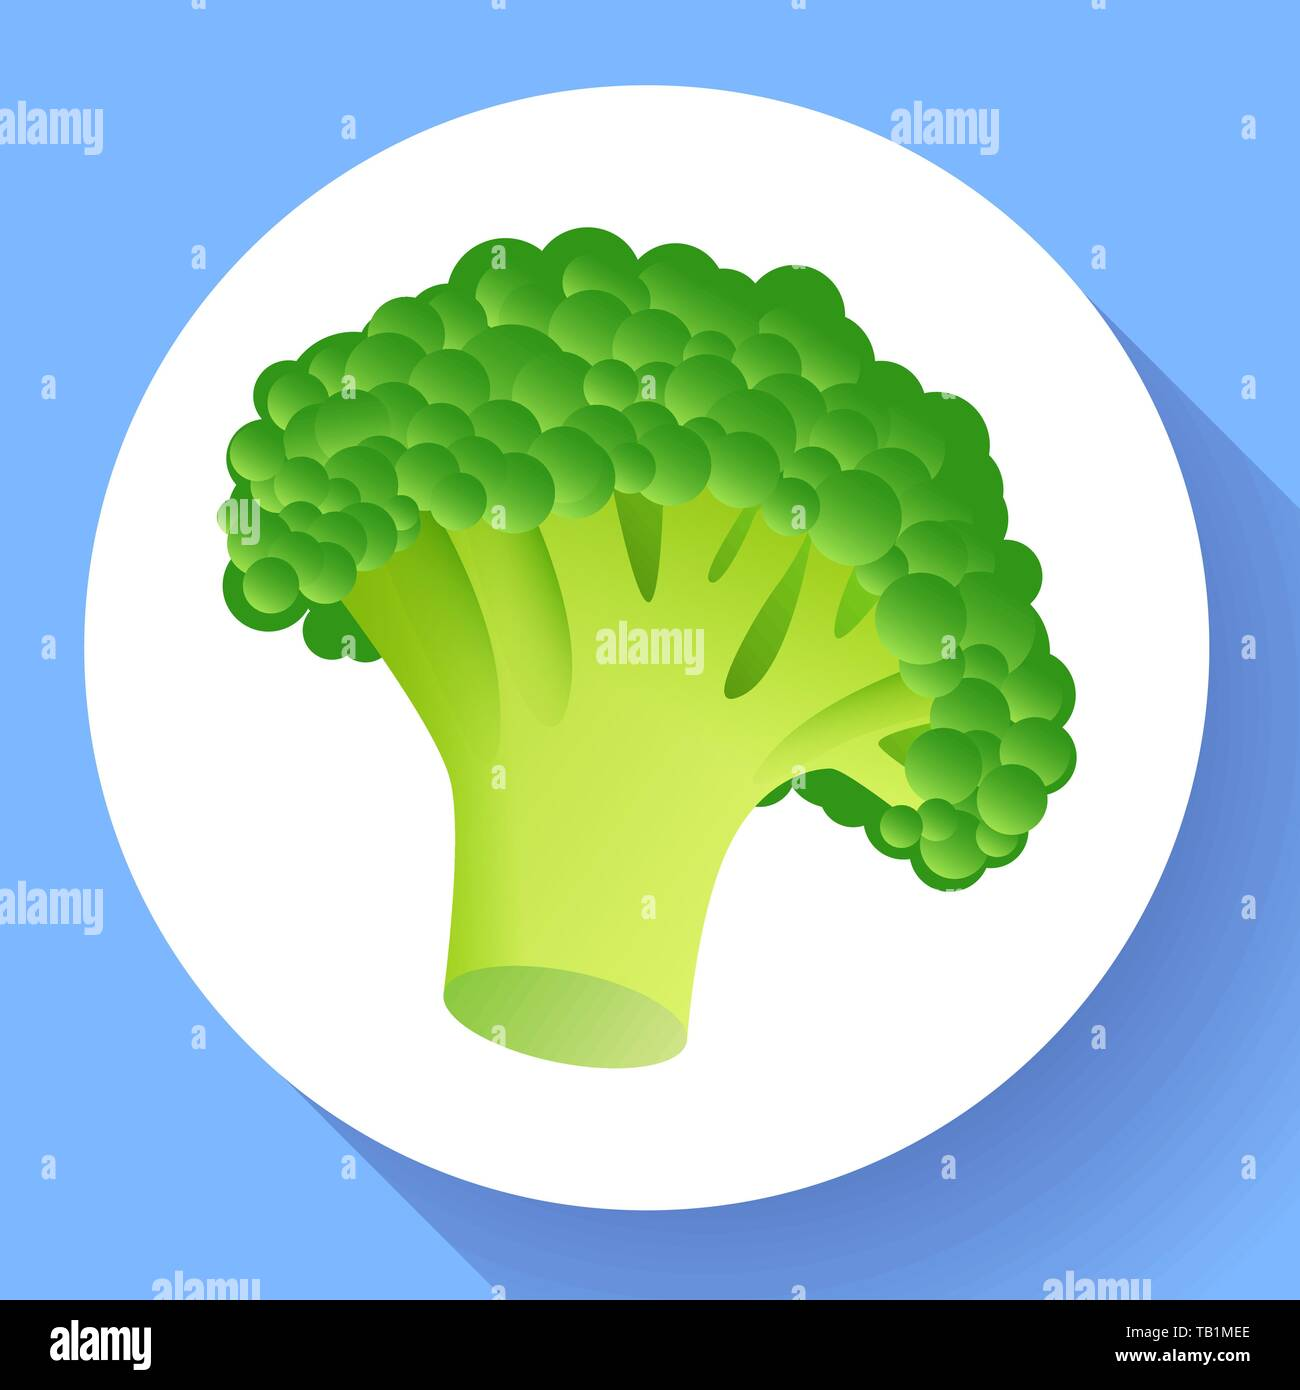 fresh broccoli icon realistic illustration of fresh broccoli vector icon for web design stock vector image art alamy https www alamy com fresh broccoli icon realistic illustration of fresh broccoli vector icon for web design image247744406 html